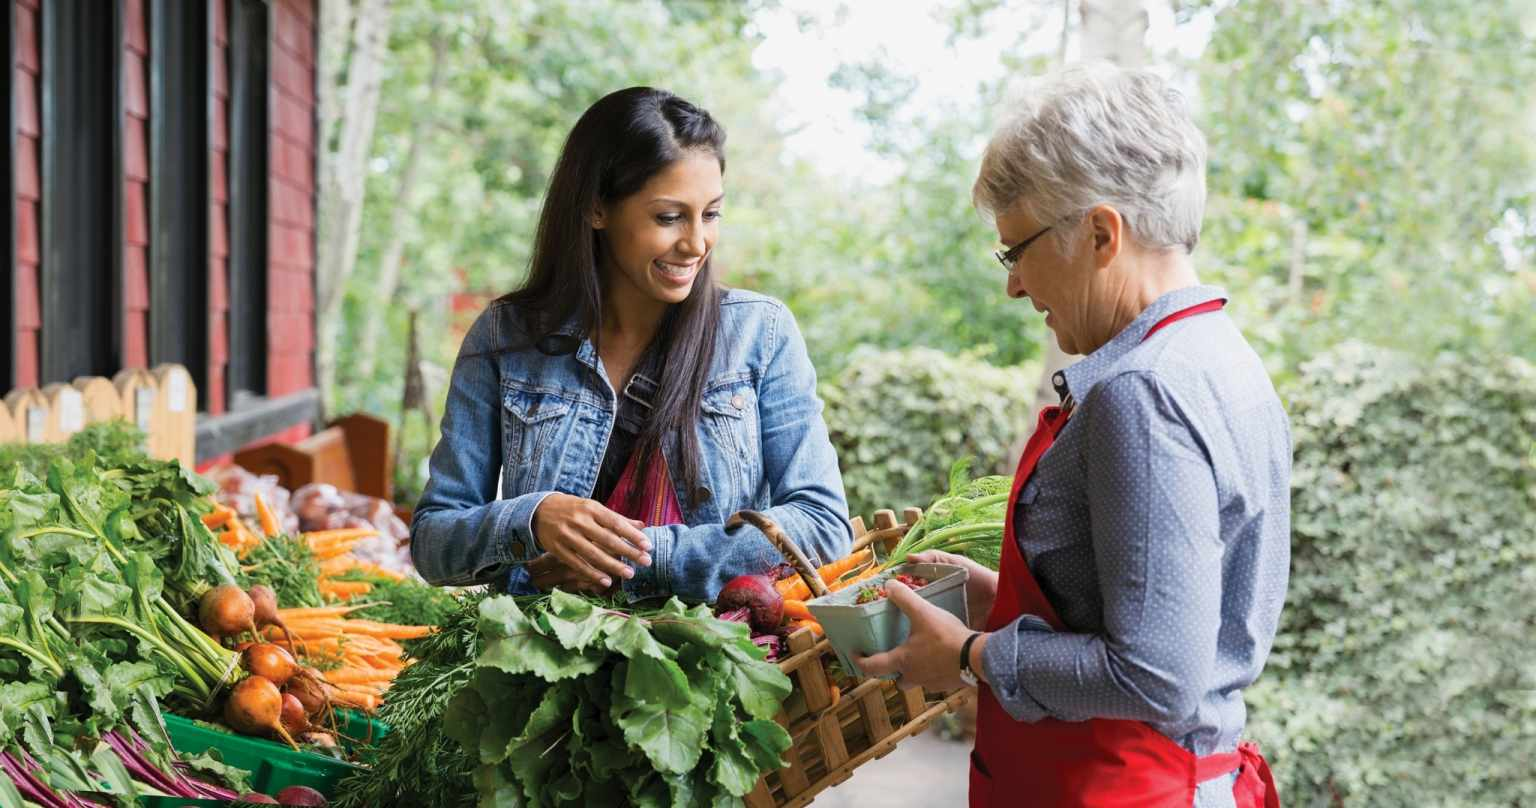 Women Talking at Vegetable Stand